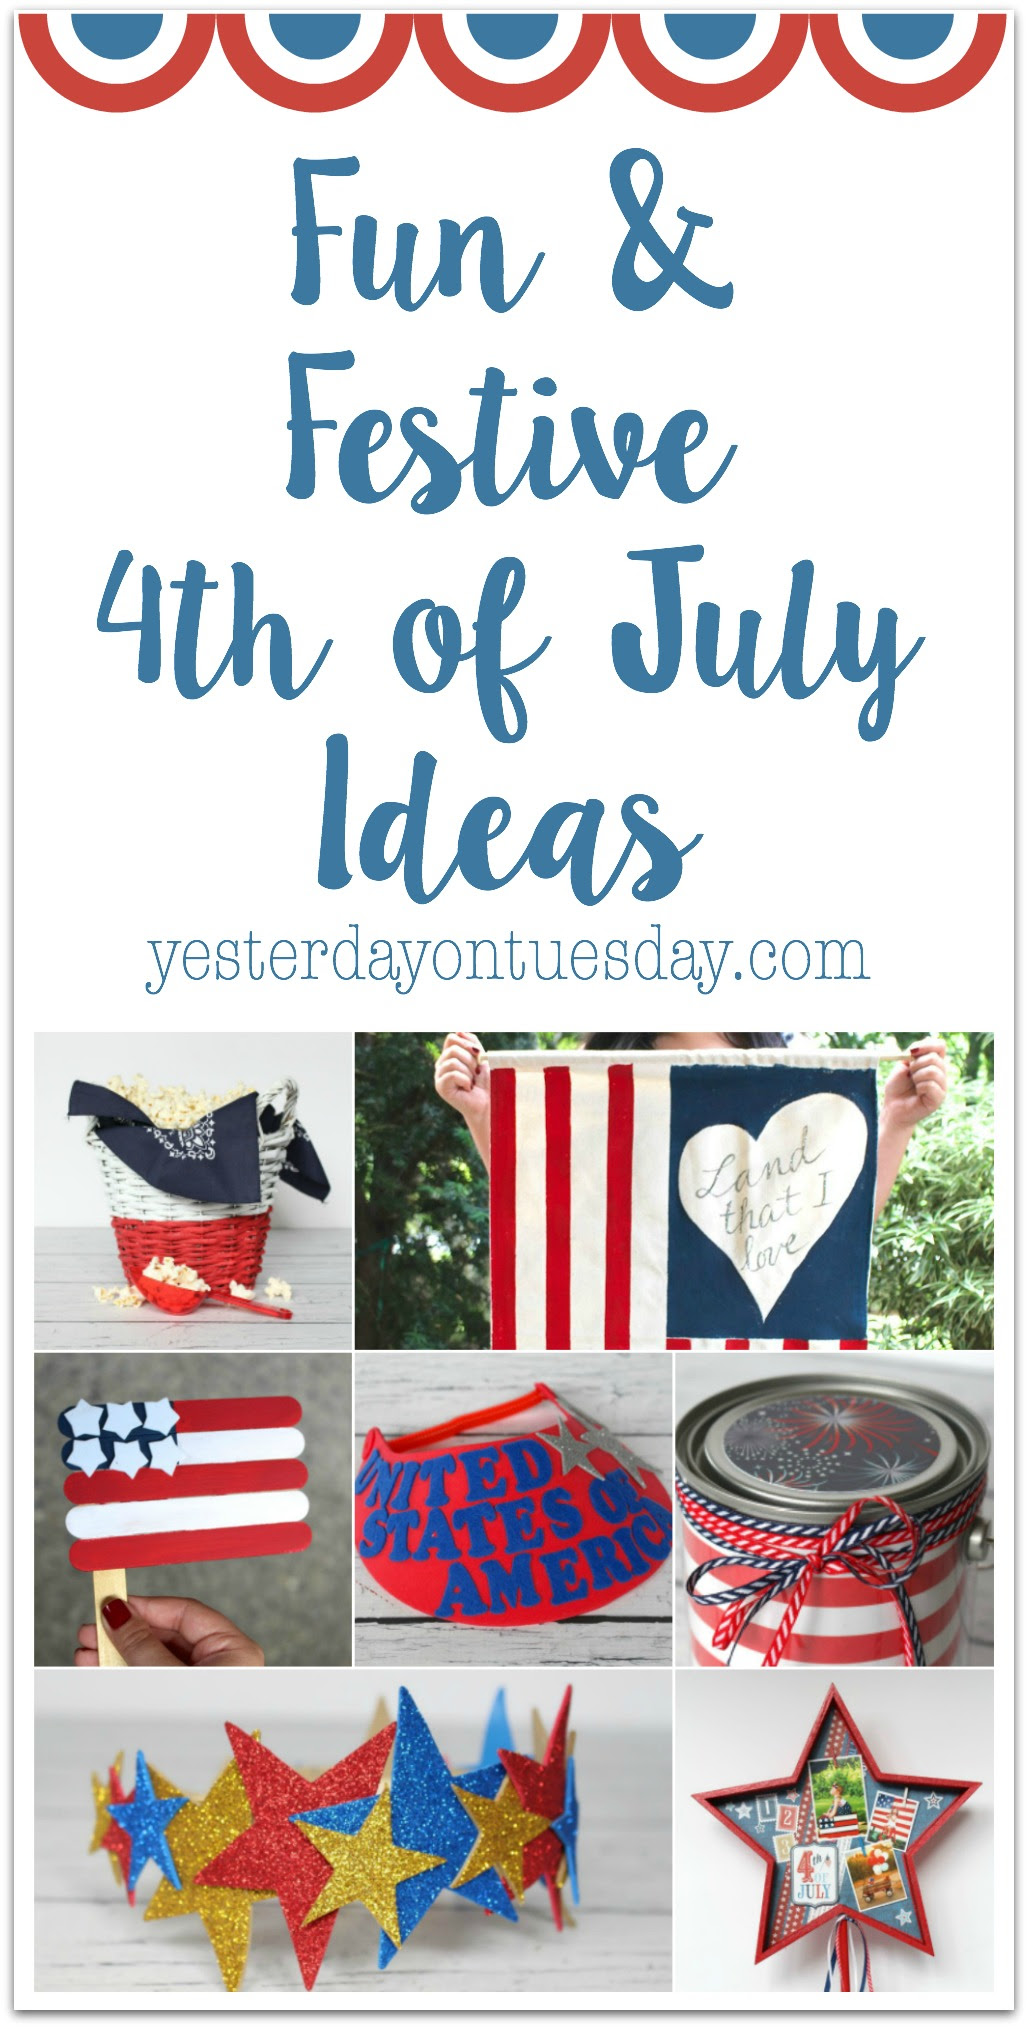 Fun And Festive 4th Of July Ideas